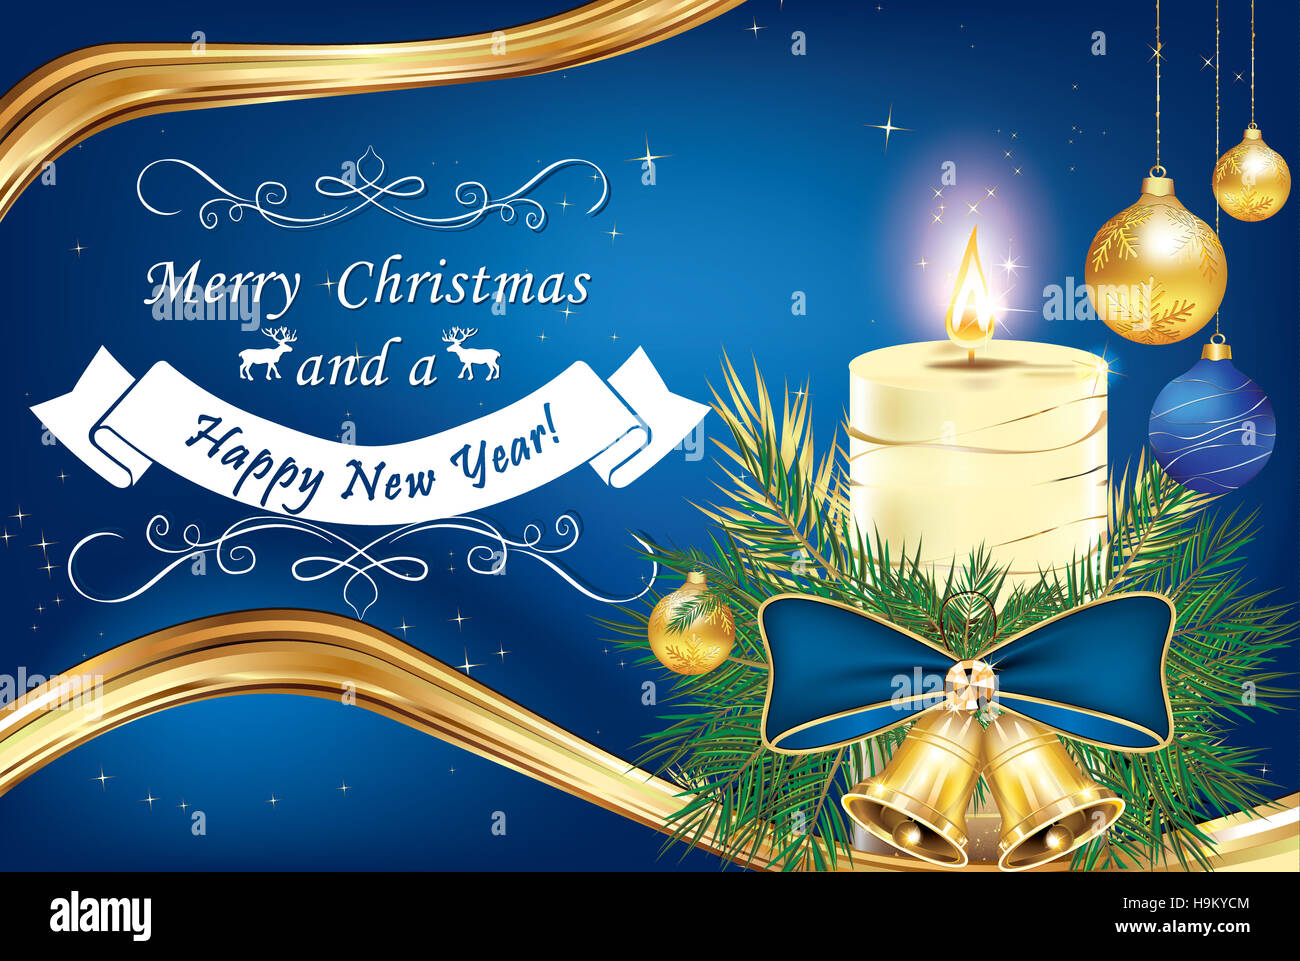 Merry christmas and happy new year greeting card for winter holidays merry christmas and happy new year greeting card for winter holidays with candle blue ribbon and pine tree branches and christ kristyandbryce Images